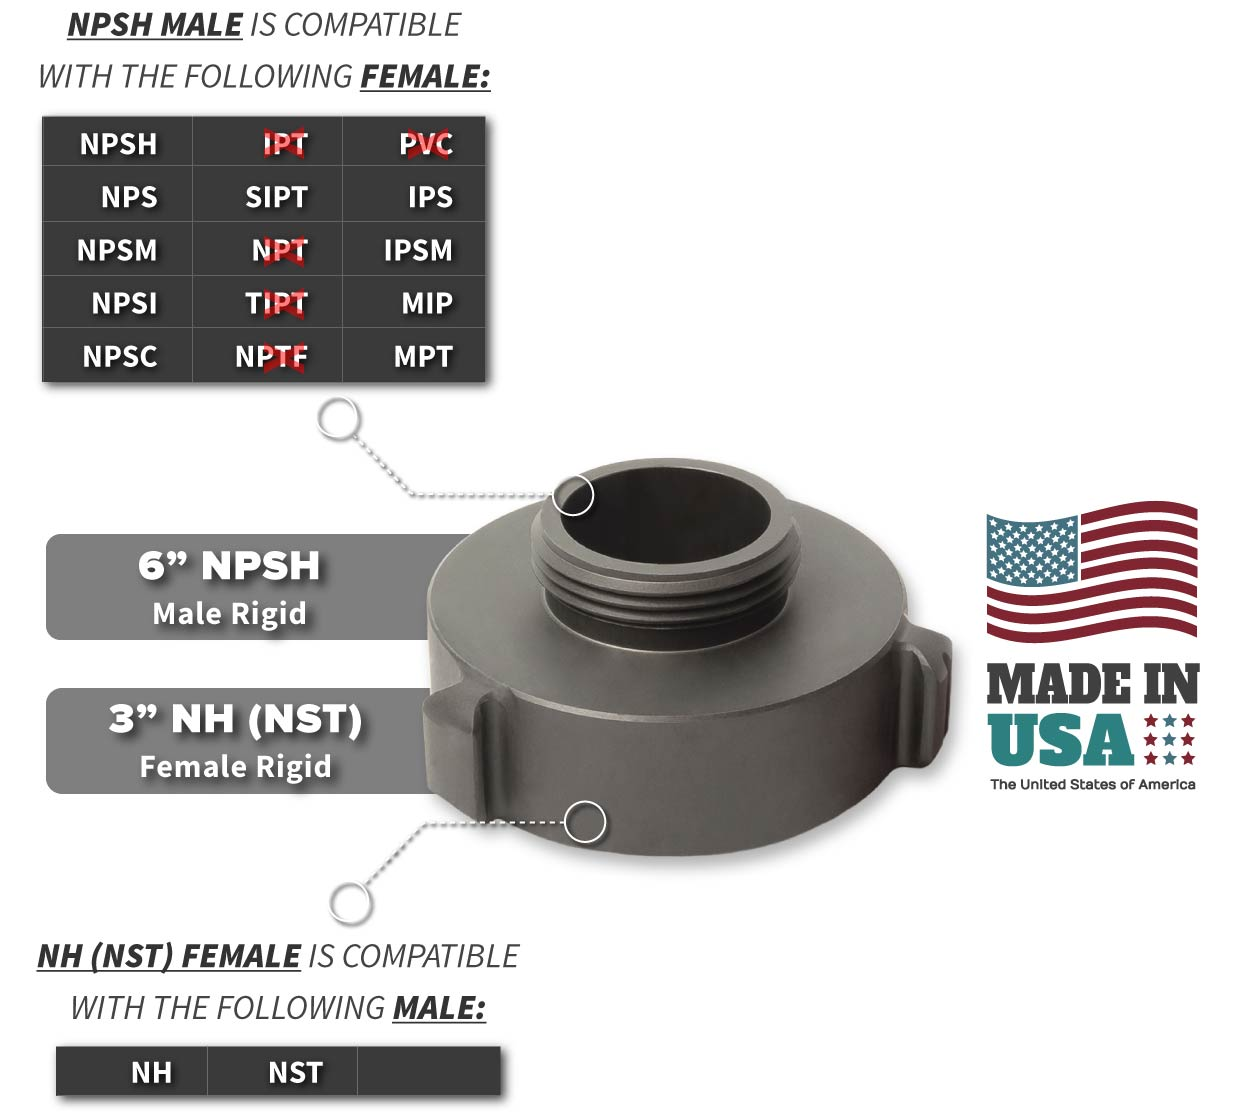 3 Inch NH-NST Female x 6 Inch NPSH Male Compatibility Thread Chart